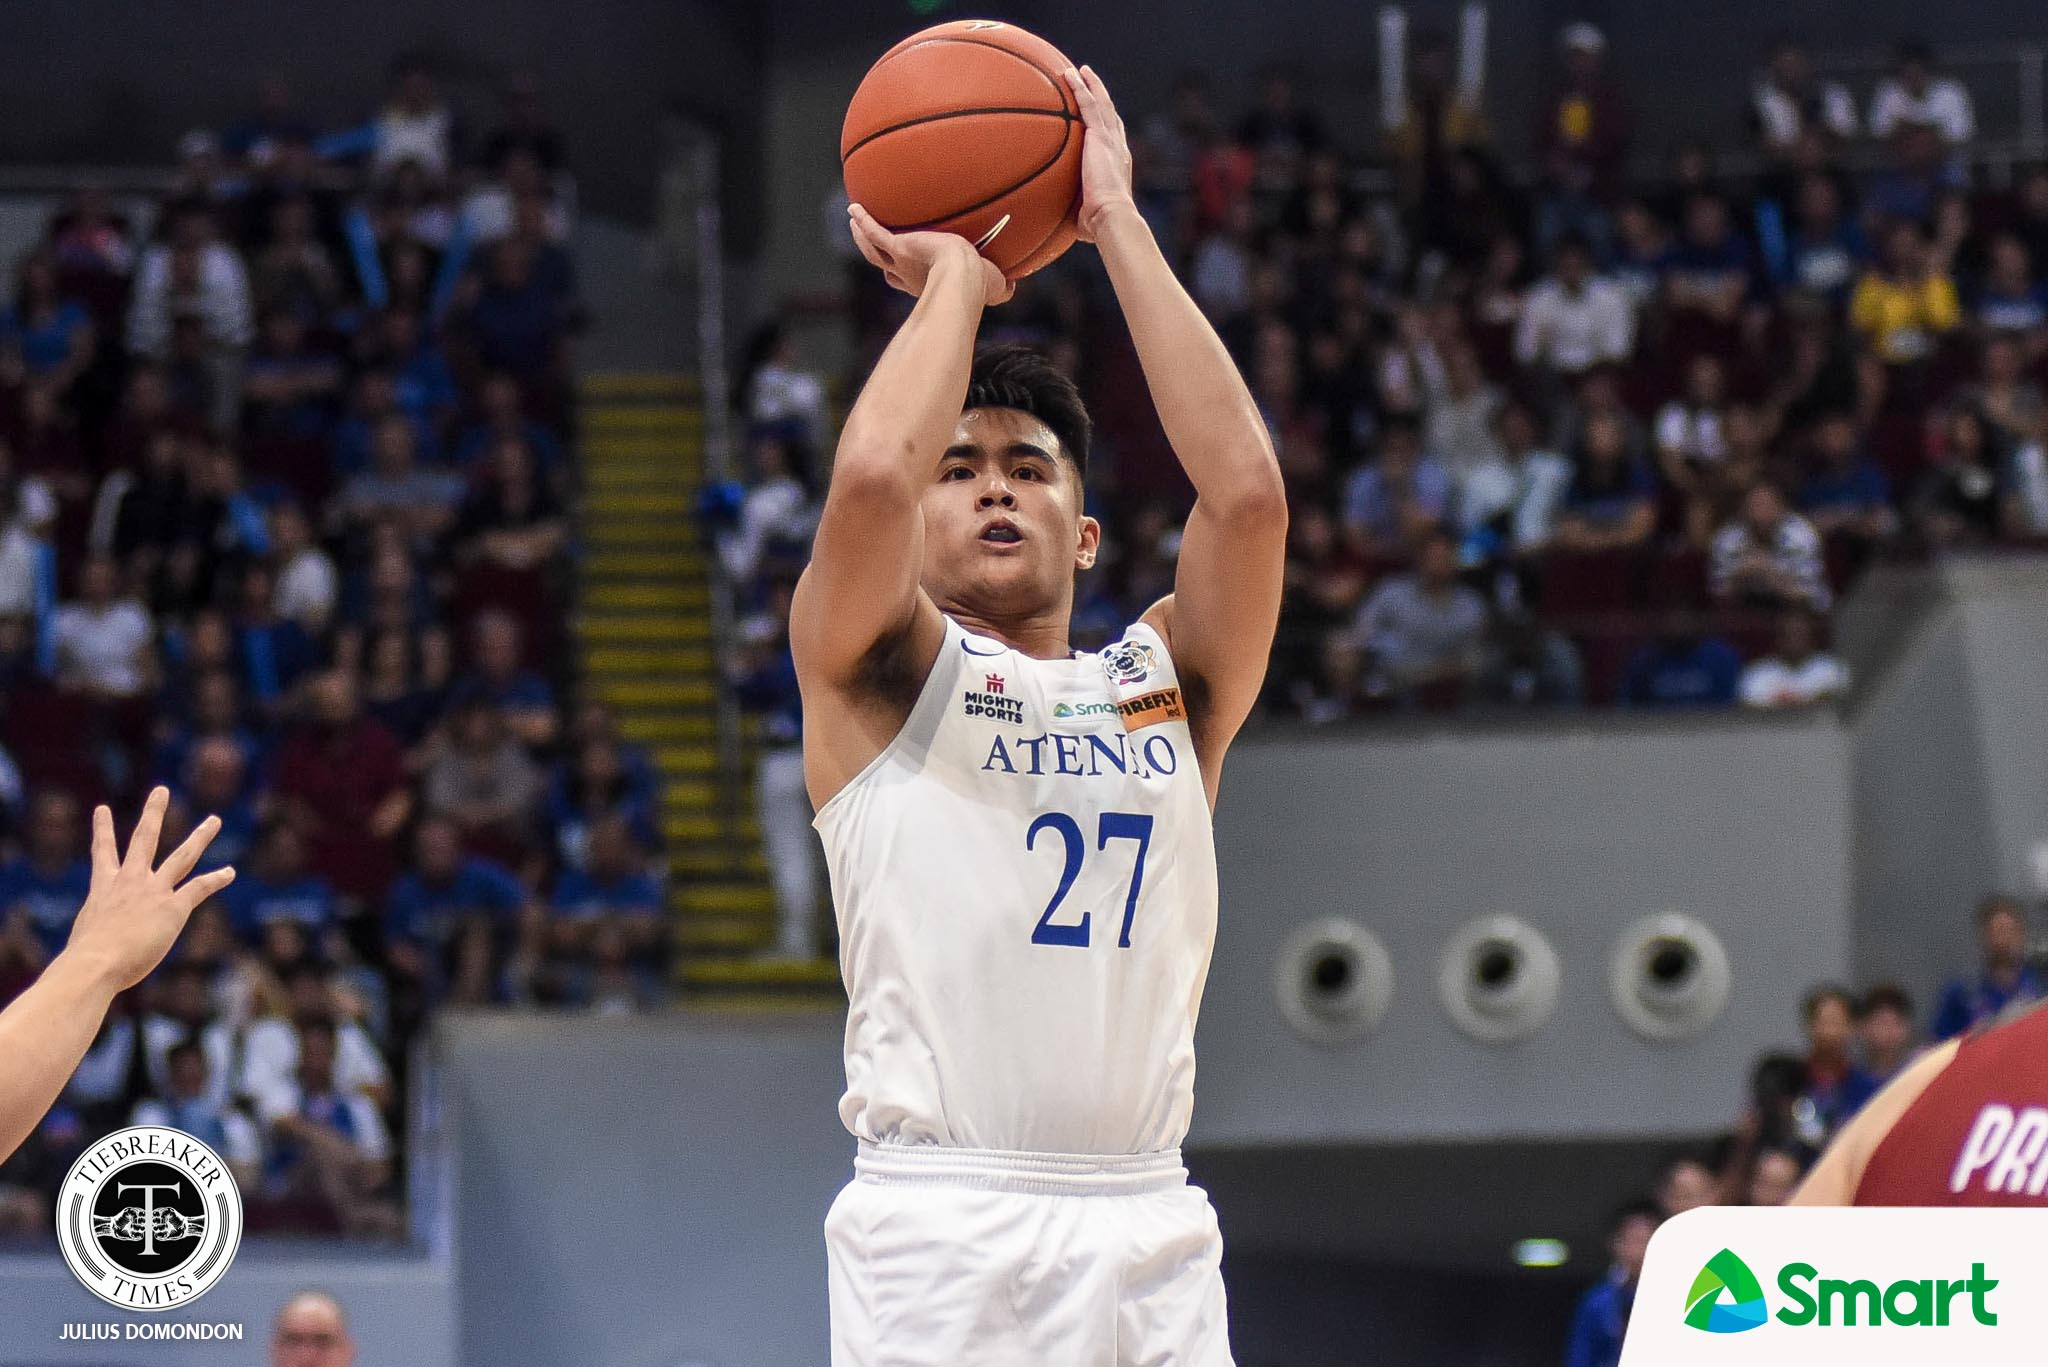 UAAP82-MBB-11TH-PHOTO-ADMU-SJ-BELANGEL Forthsky Padrigao to remain in Ateneo for college ADMU Basketball News UAAP  - philippine sports news